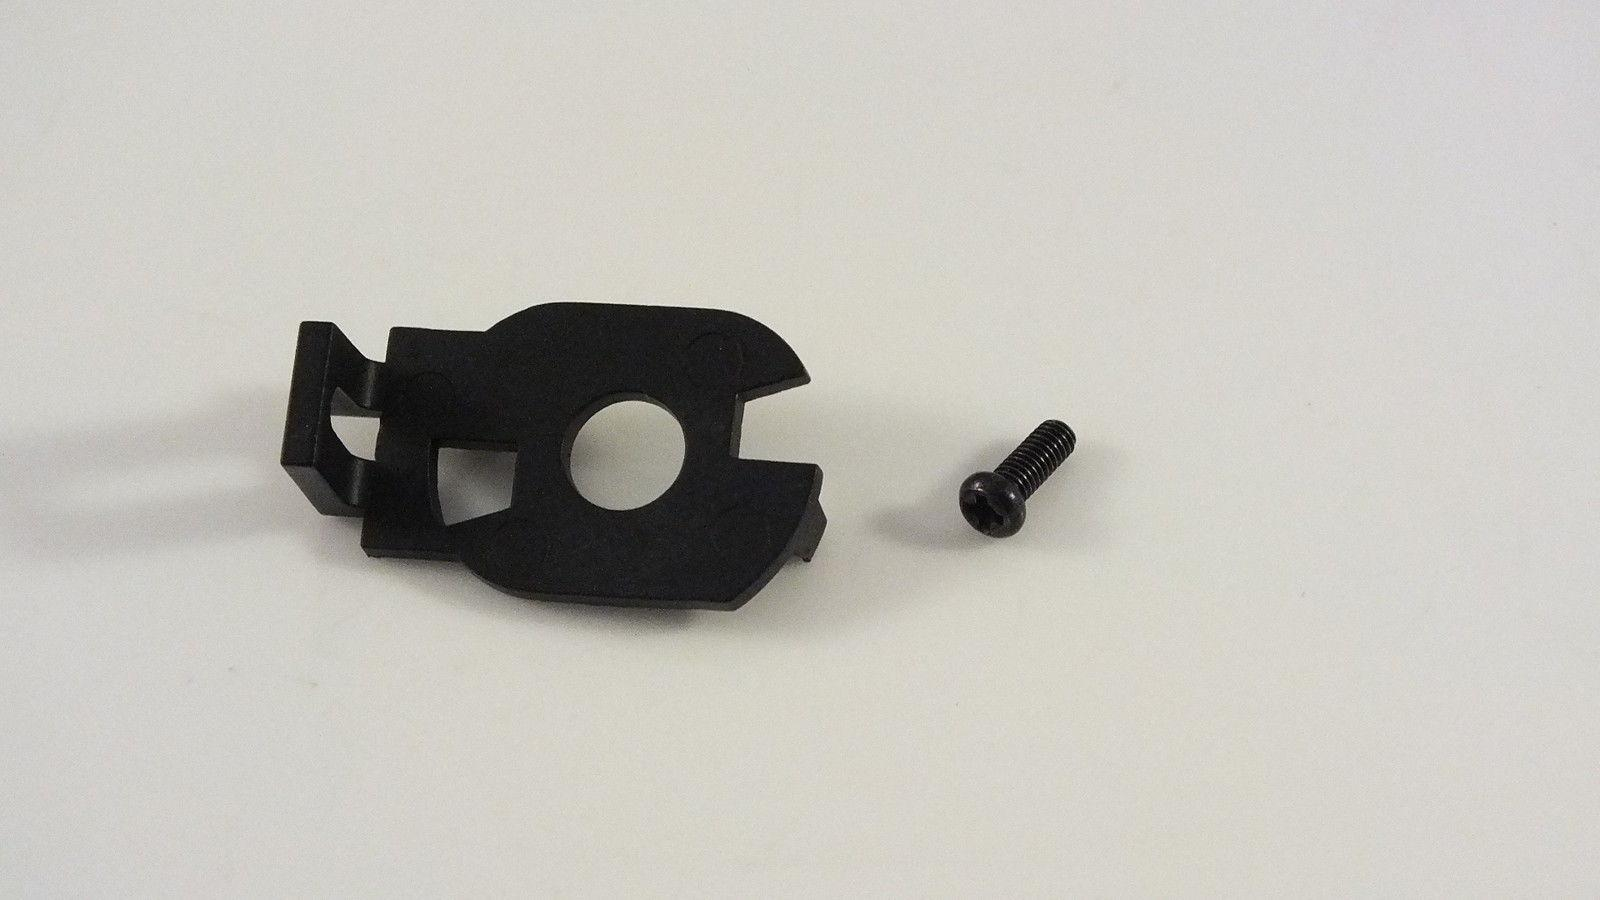 X6285  # HORNBY TRIANG  MOTOR RETAINER AND SCREW B17           C12D